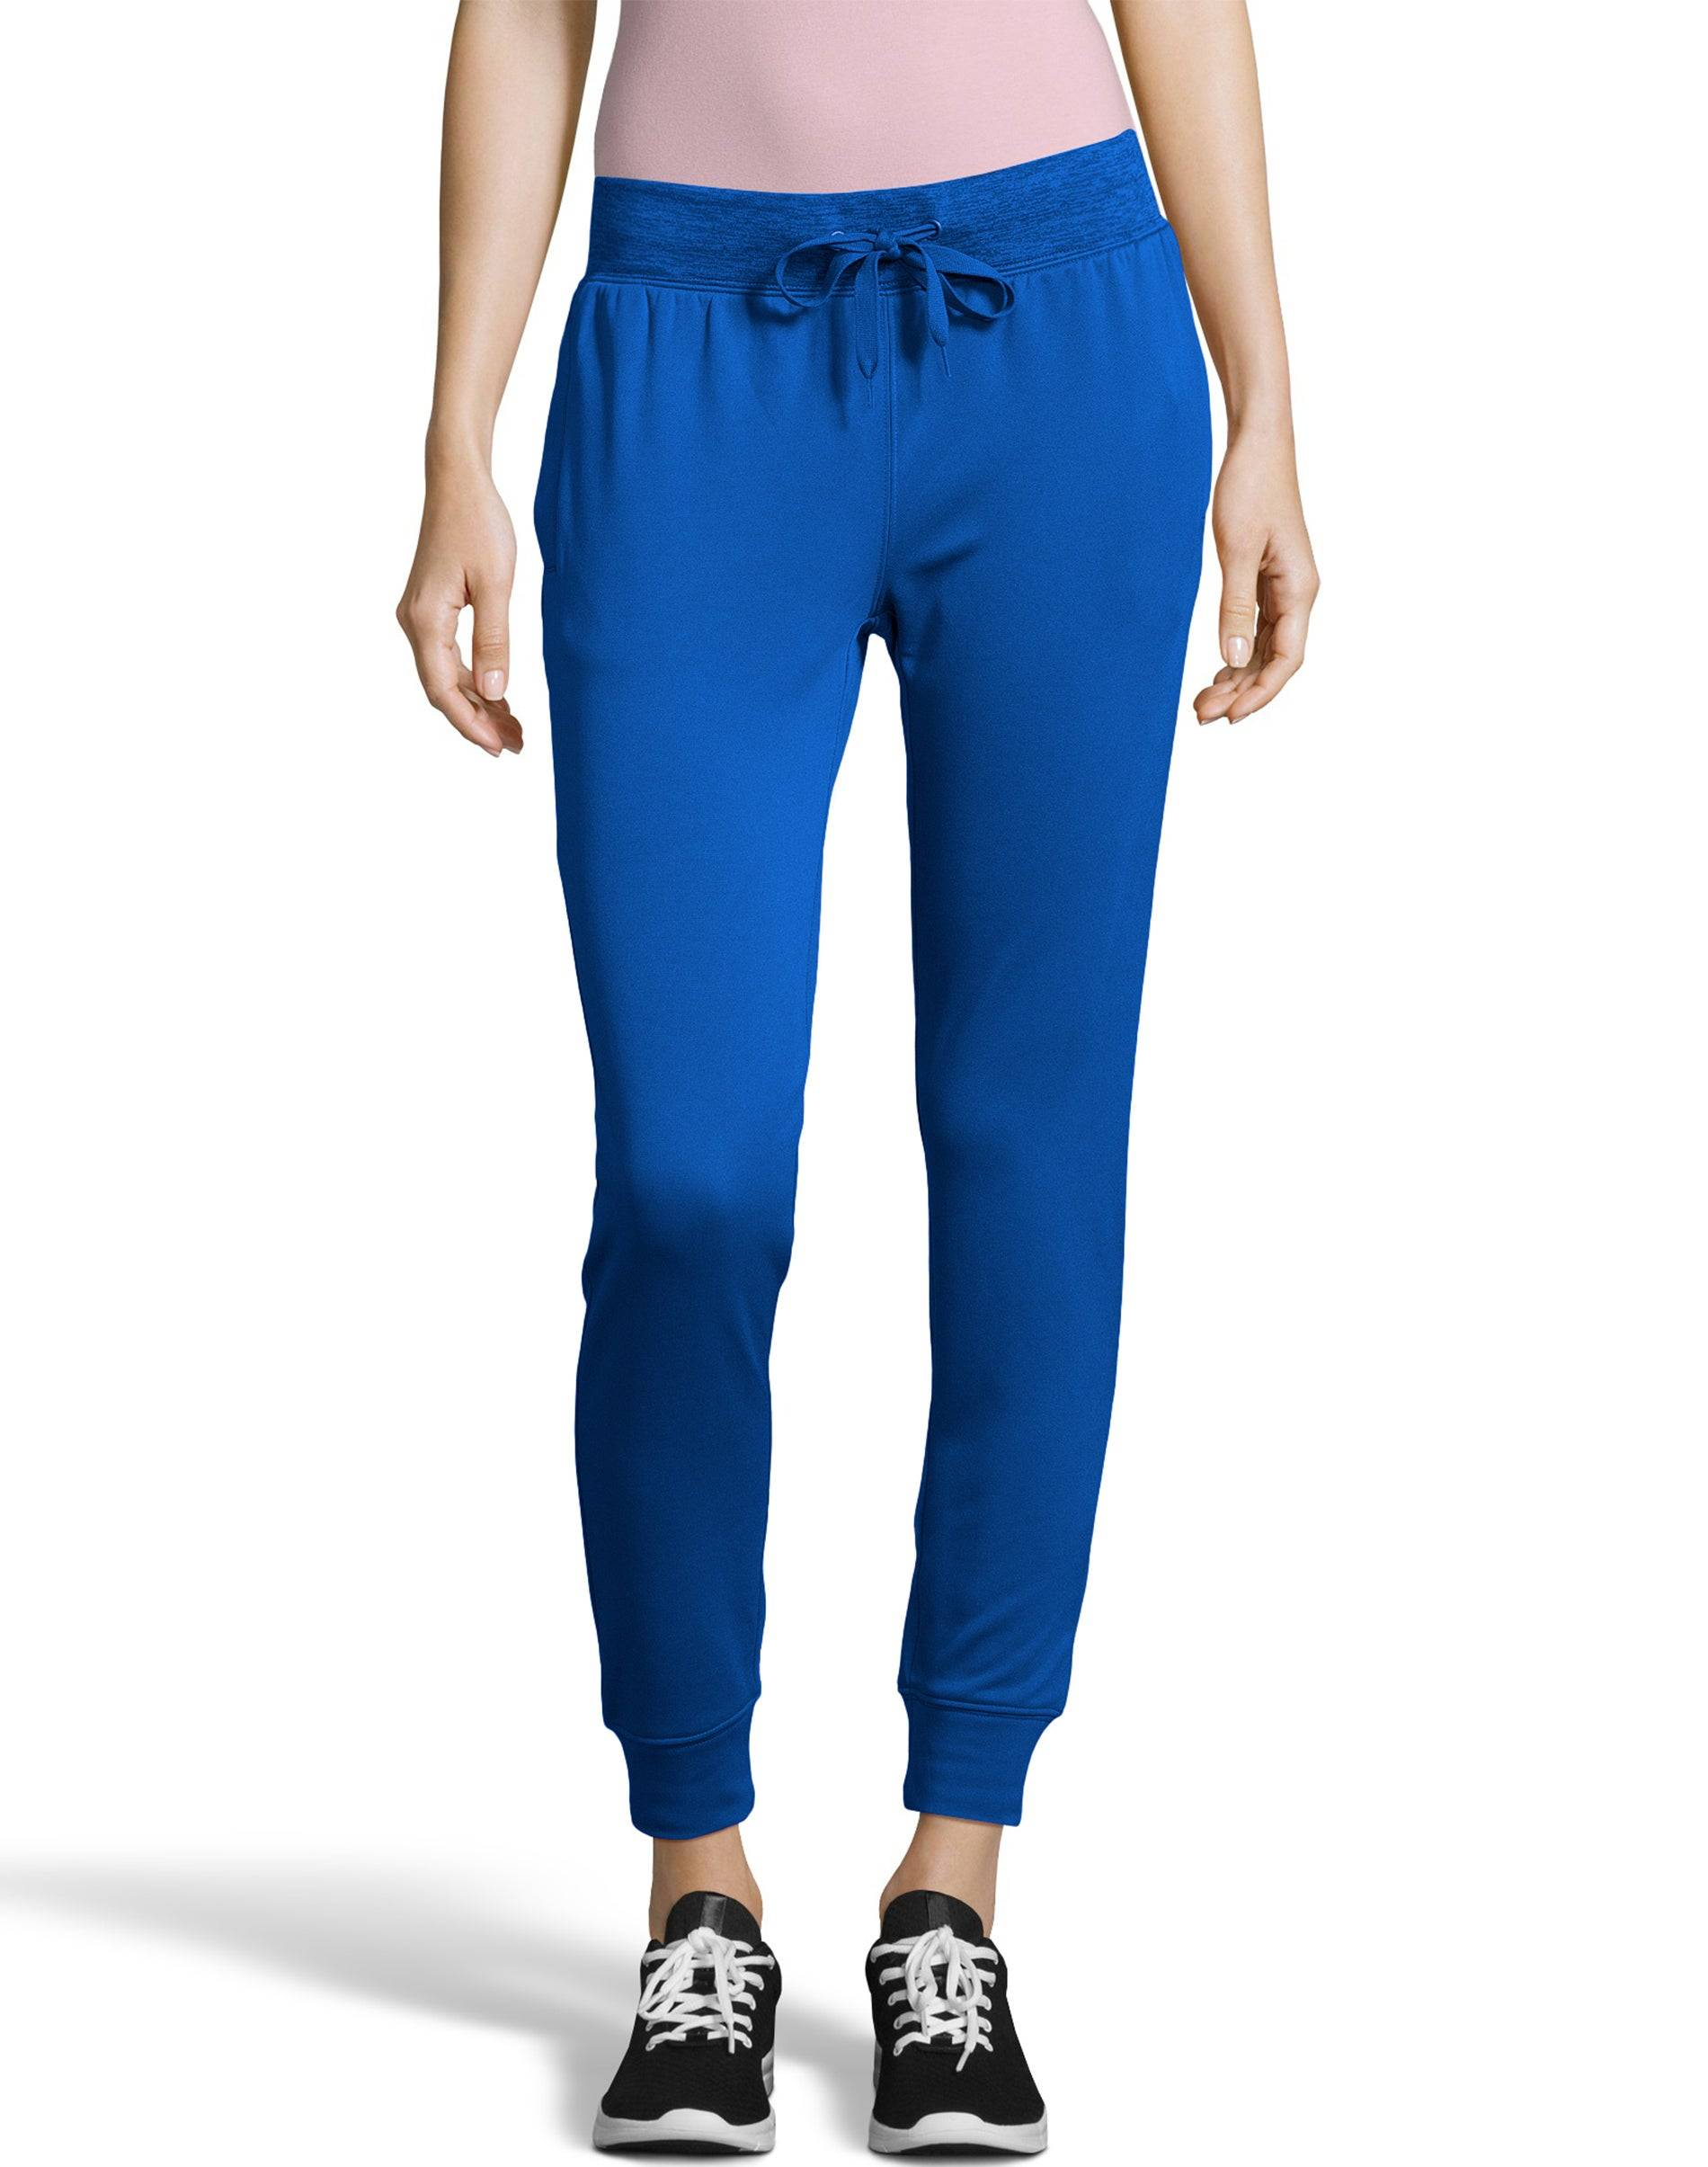 Hanes Sport Women's Performance Fleece Jogger Pants With Pockets Awesome Blue/Awesome Blue Heather M